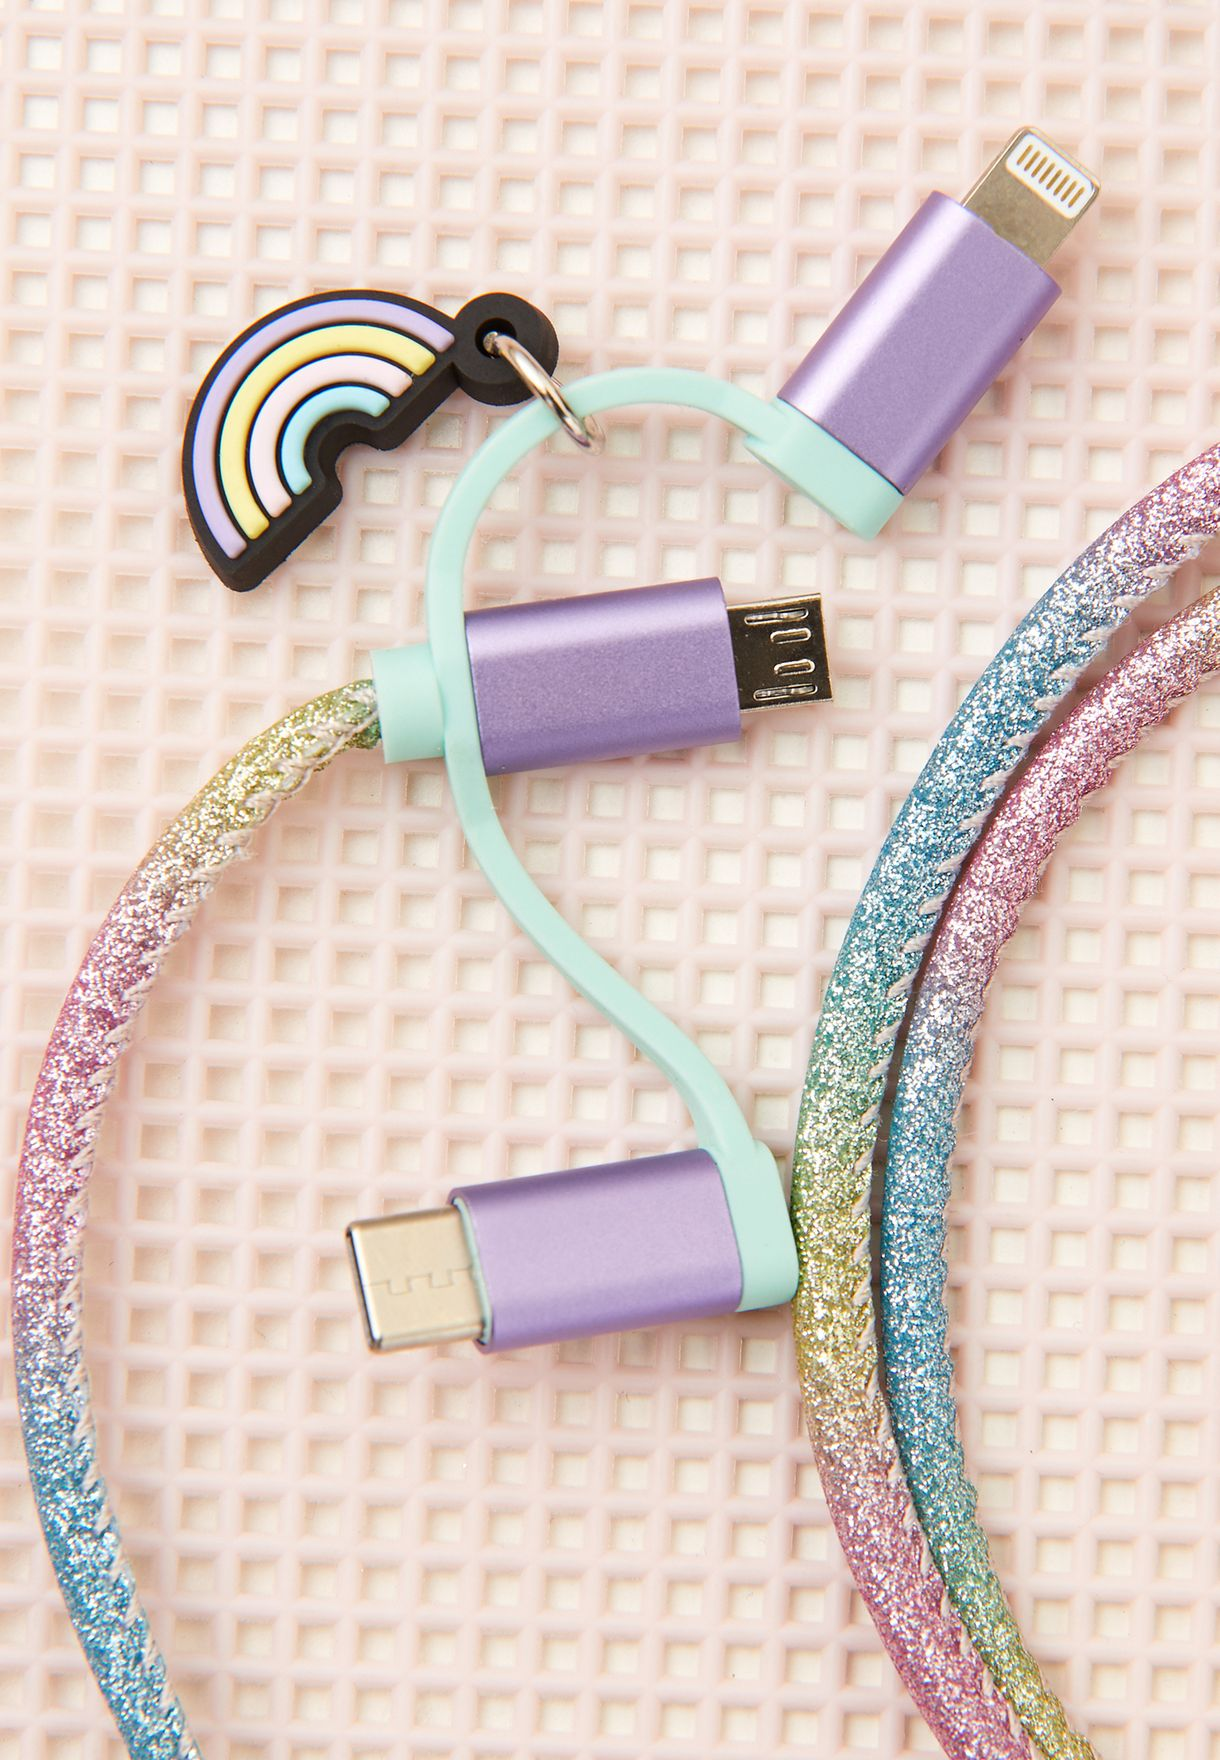 3-in-1 Unicorn Charging Cable